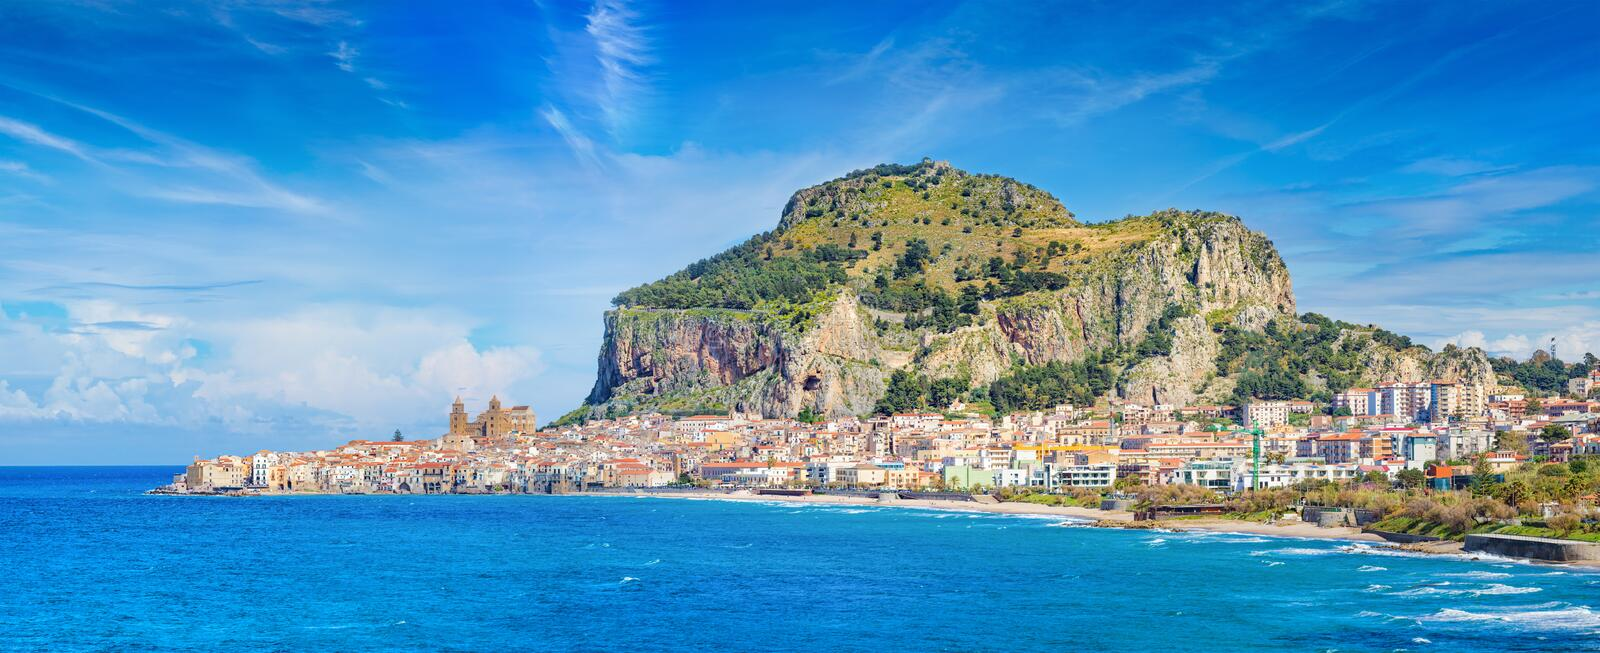 Beautiful Cefalu, small resort town on Tyrrhenian coast of Sicily, Italy. Long sandy beach and blue sea in Cefalu, town in Italian Metropolitan City of Palermo royalty free stock images